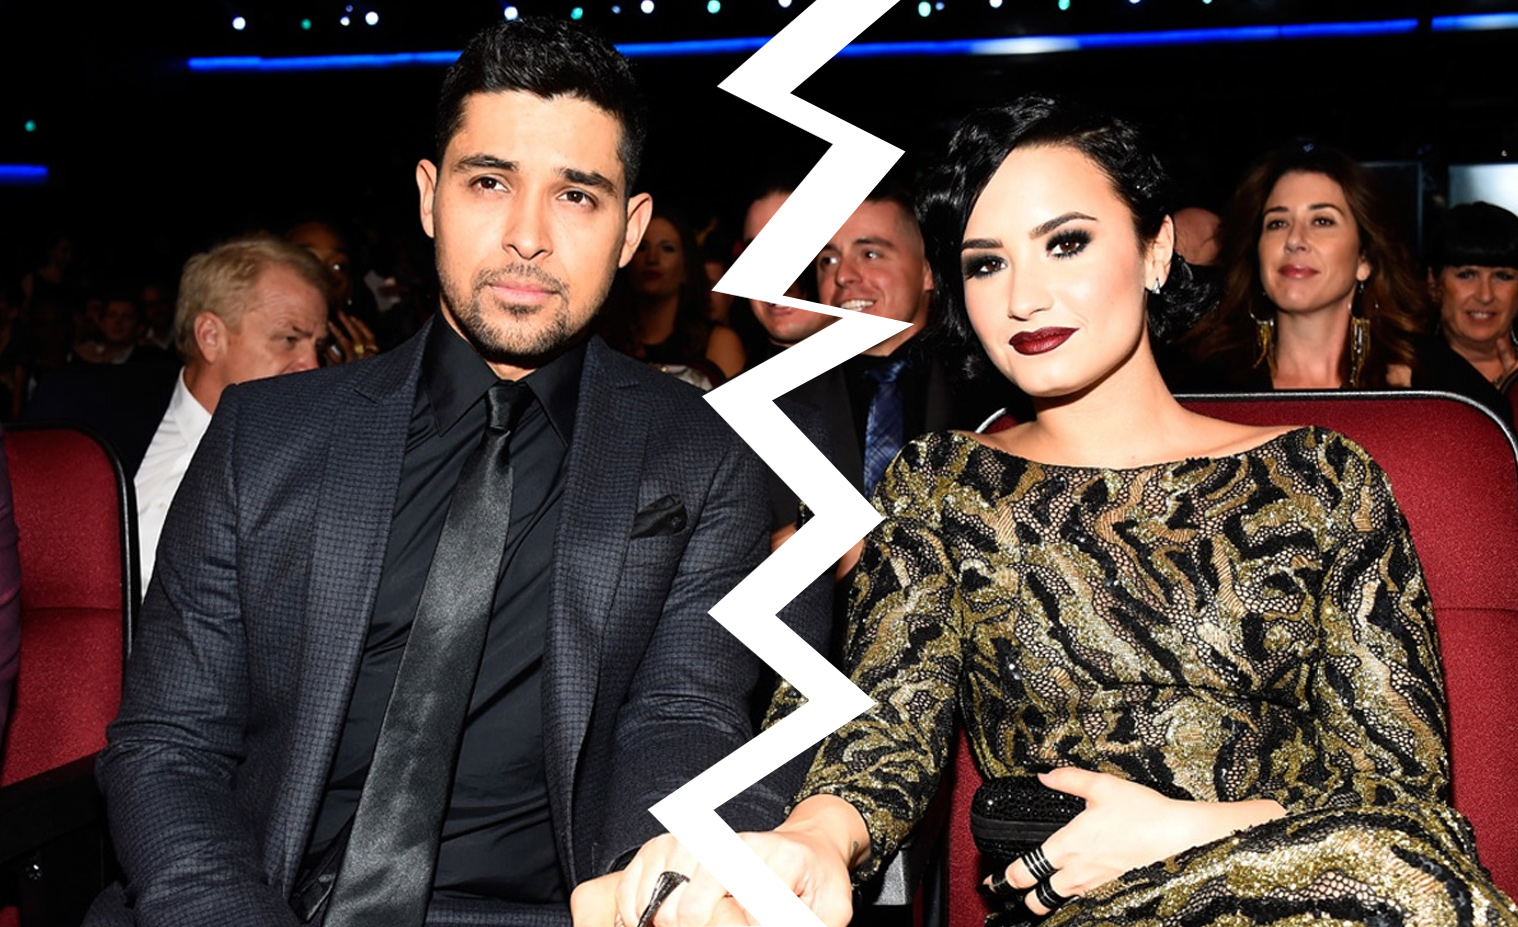 Demi wilmer break up teaser